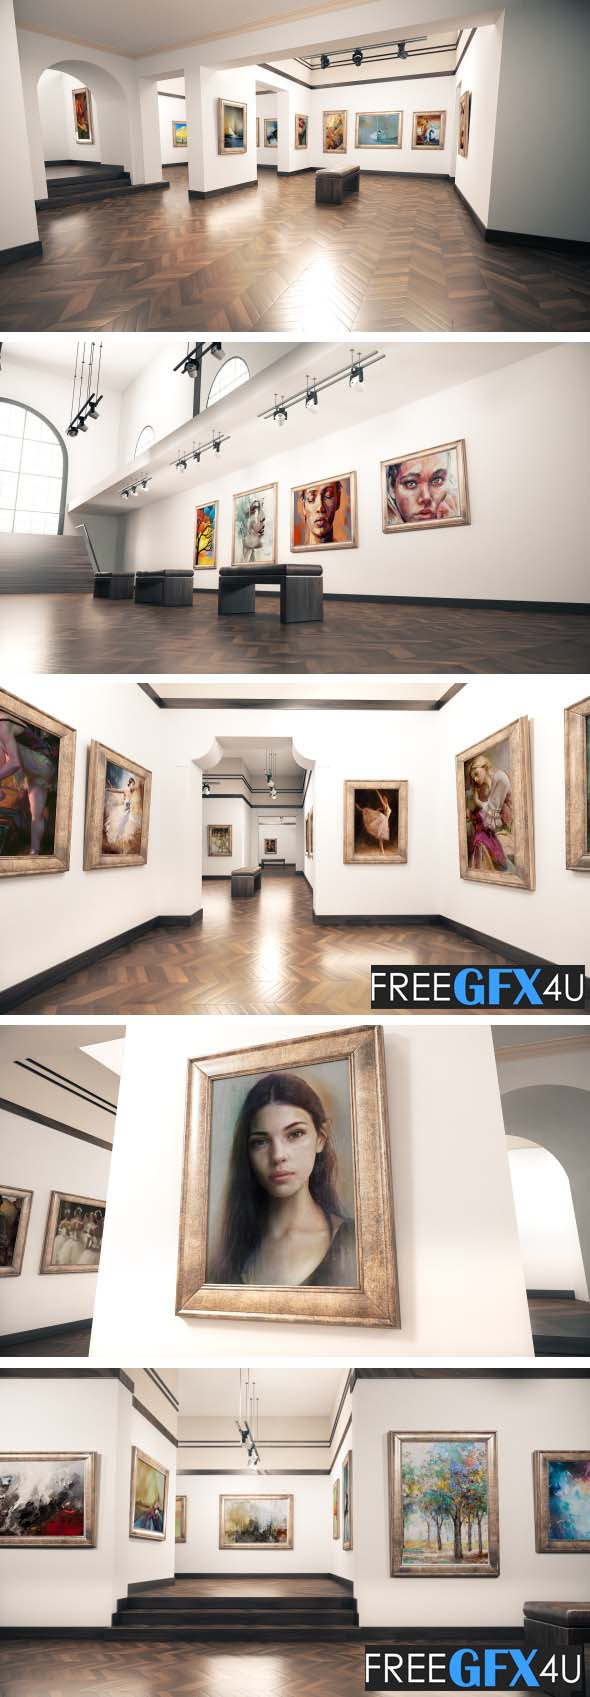 Aftereffect Gallery and Art Museum project